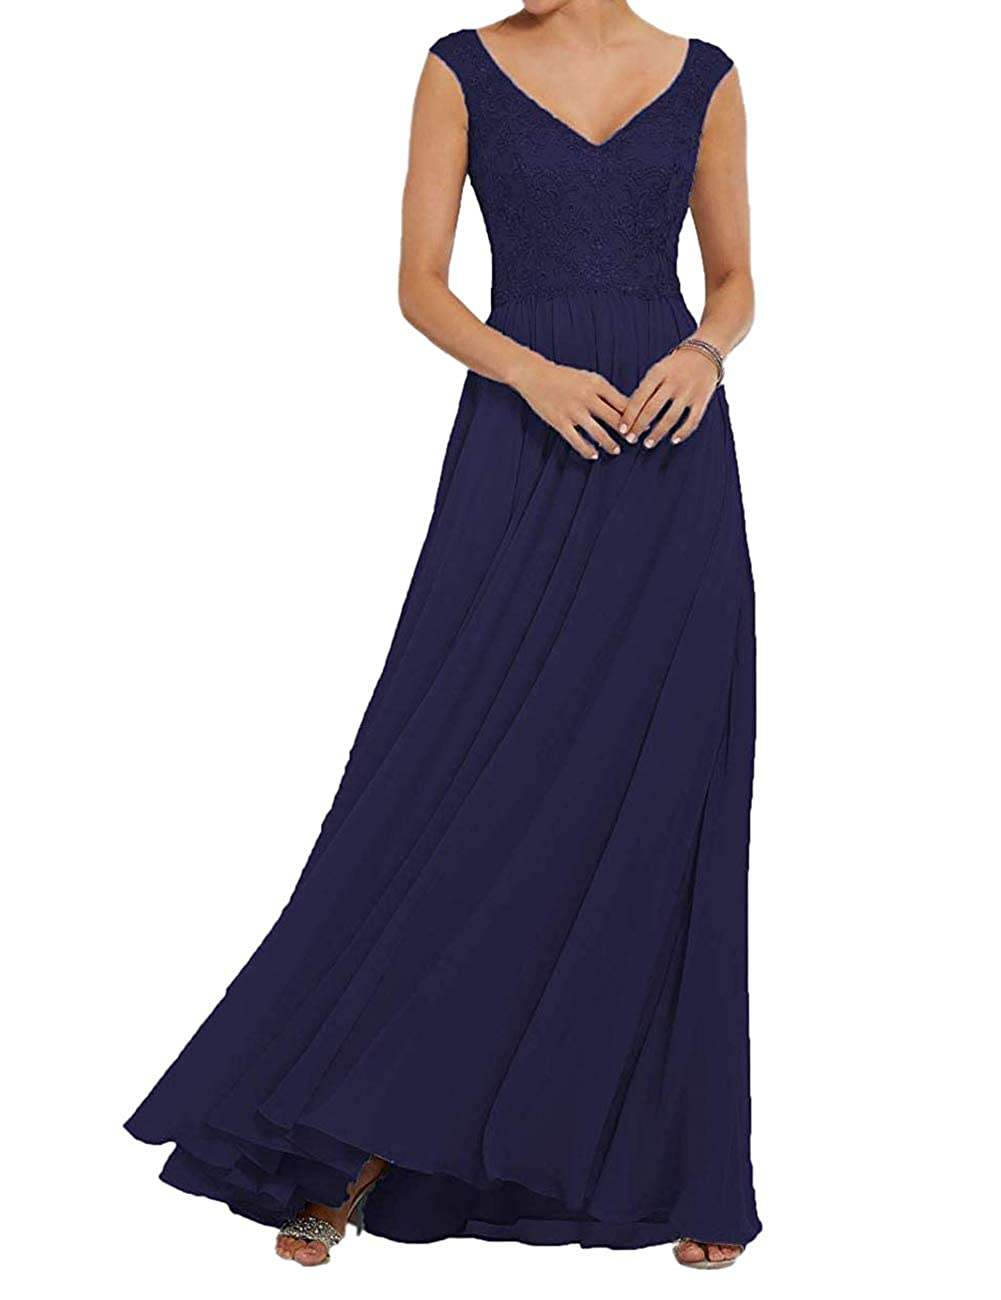 Navy bluee ASBridal Prom Dresses Long Sequin Quinceanera Dres Backless Formal Evening Gown with Sash